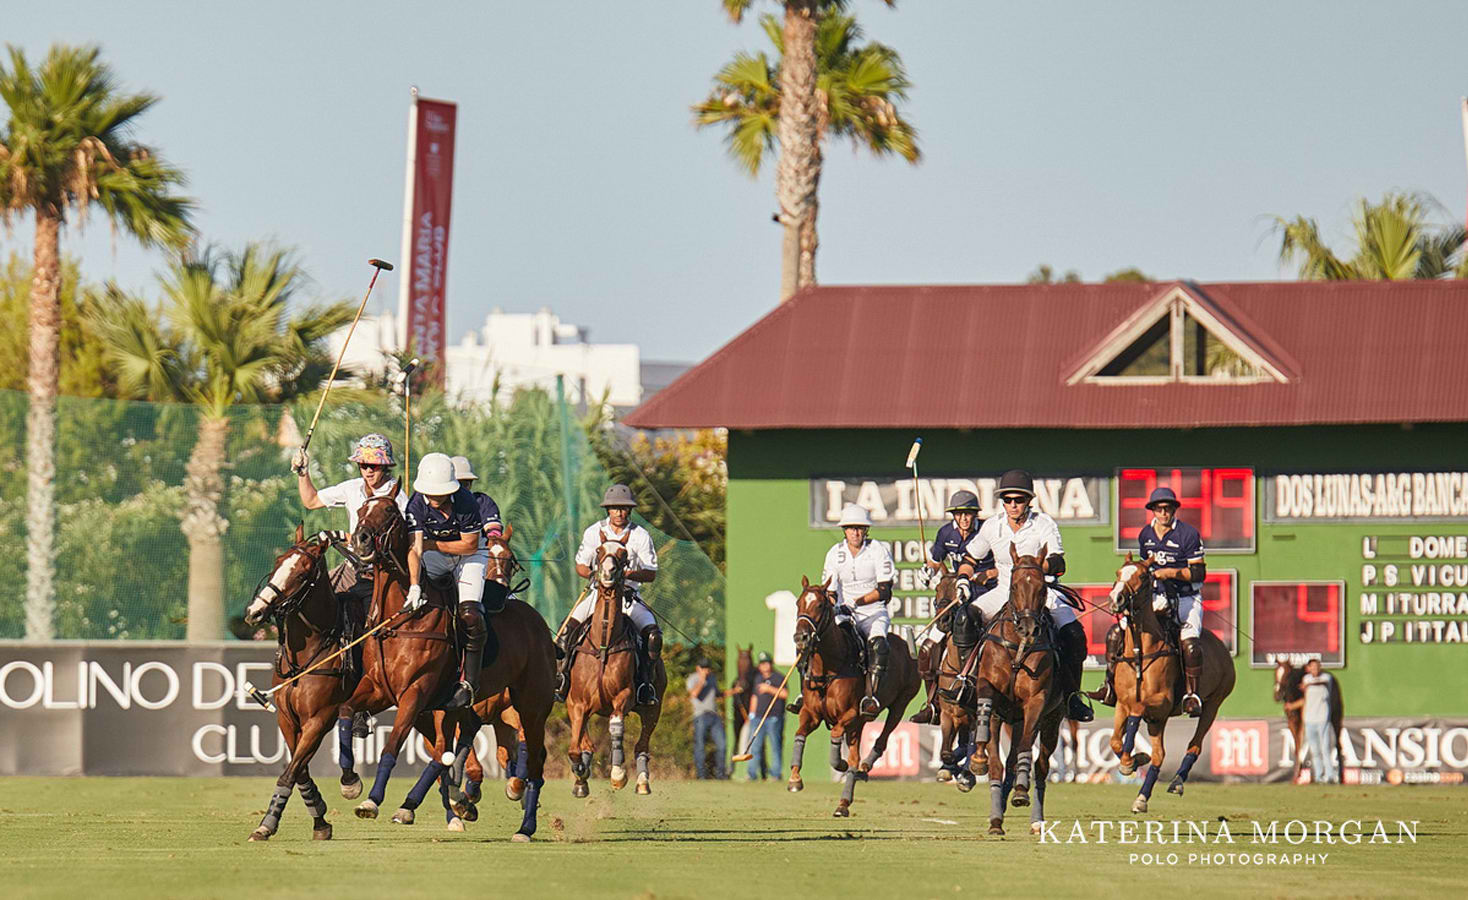 Polo in Sotogrande